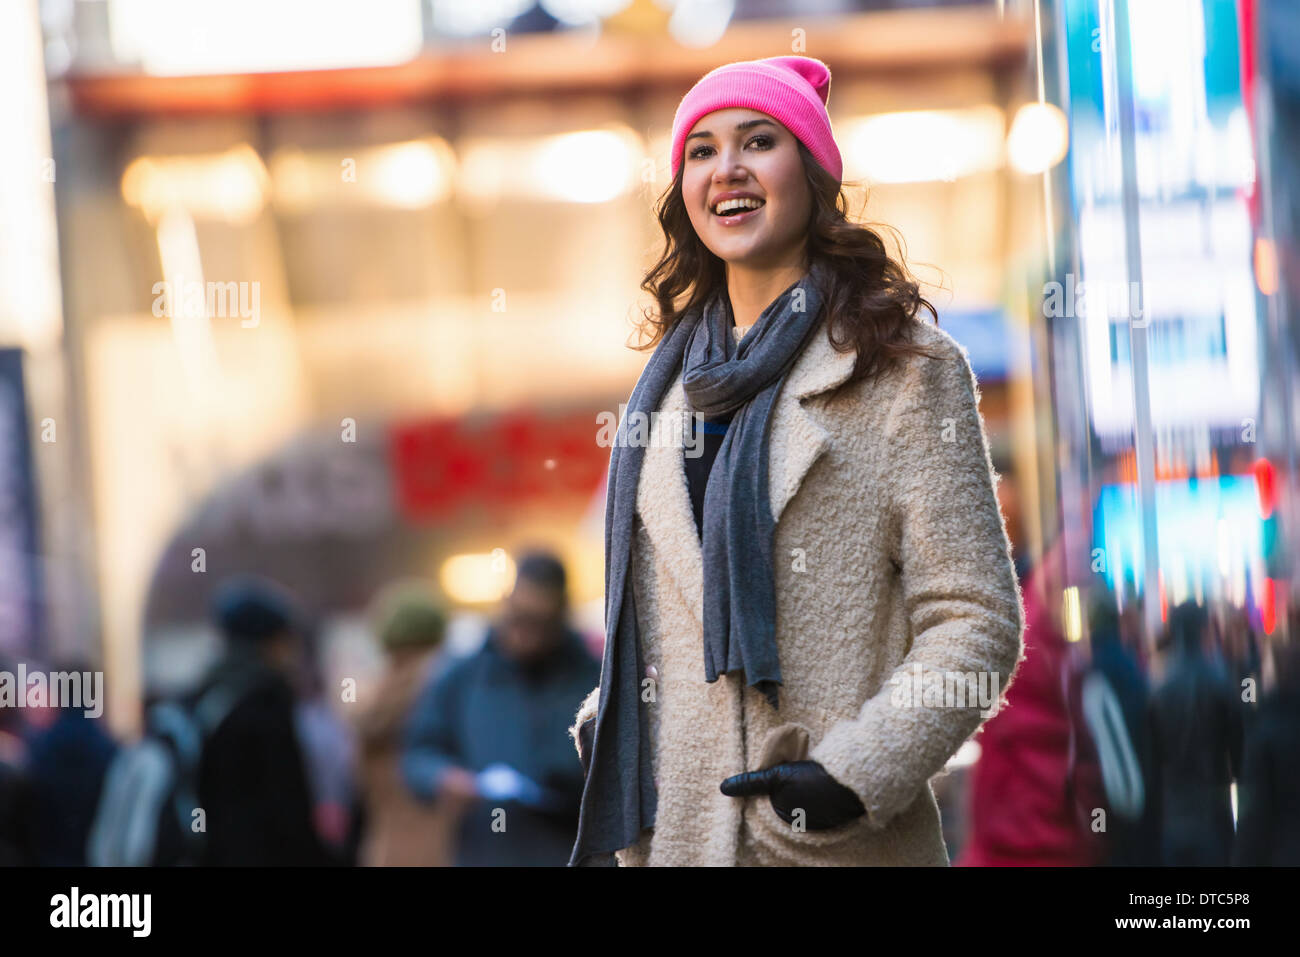 Young female tourist exploring streets, New York City, USA - Stock Image